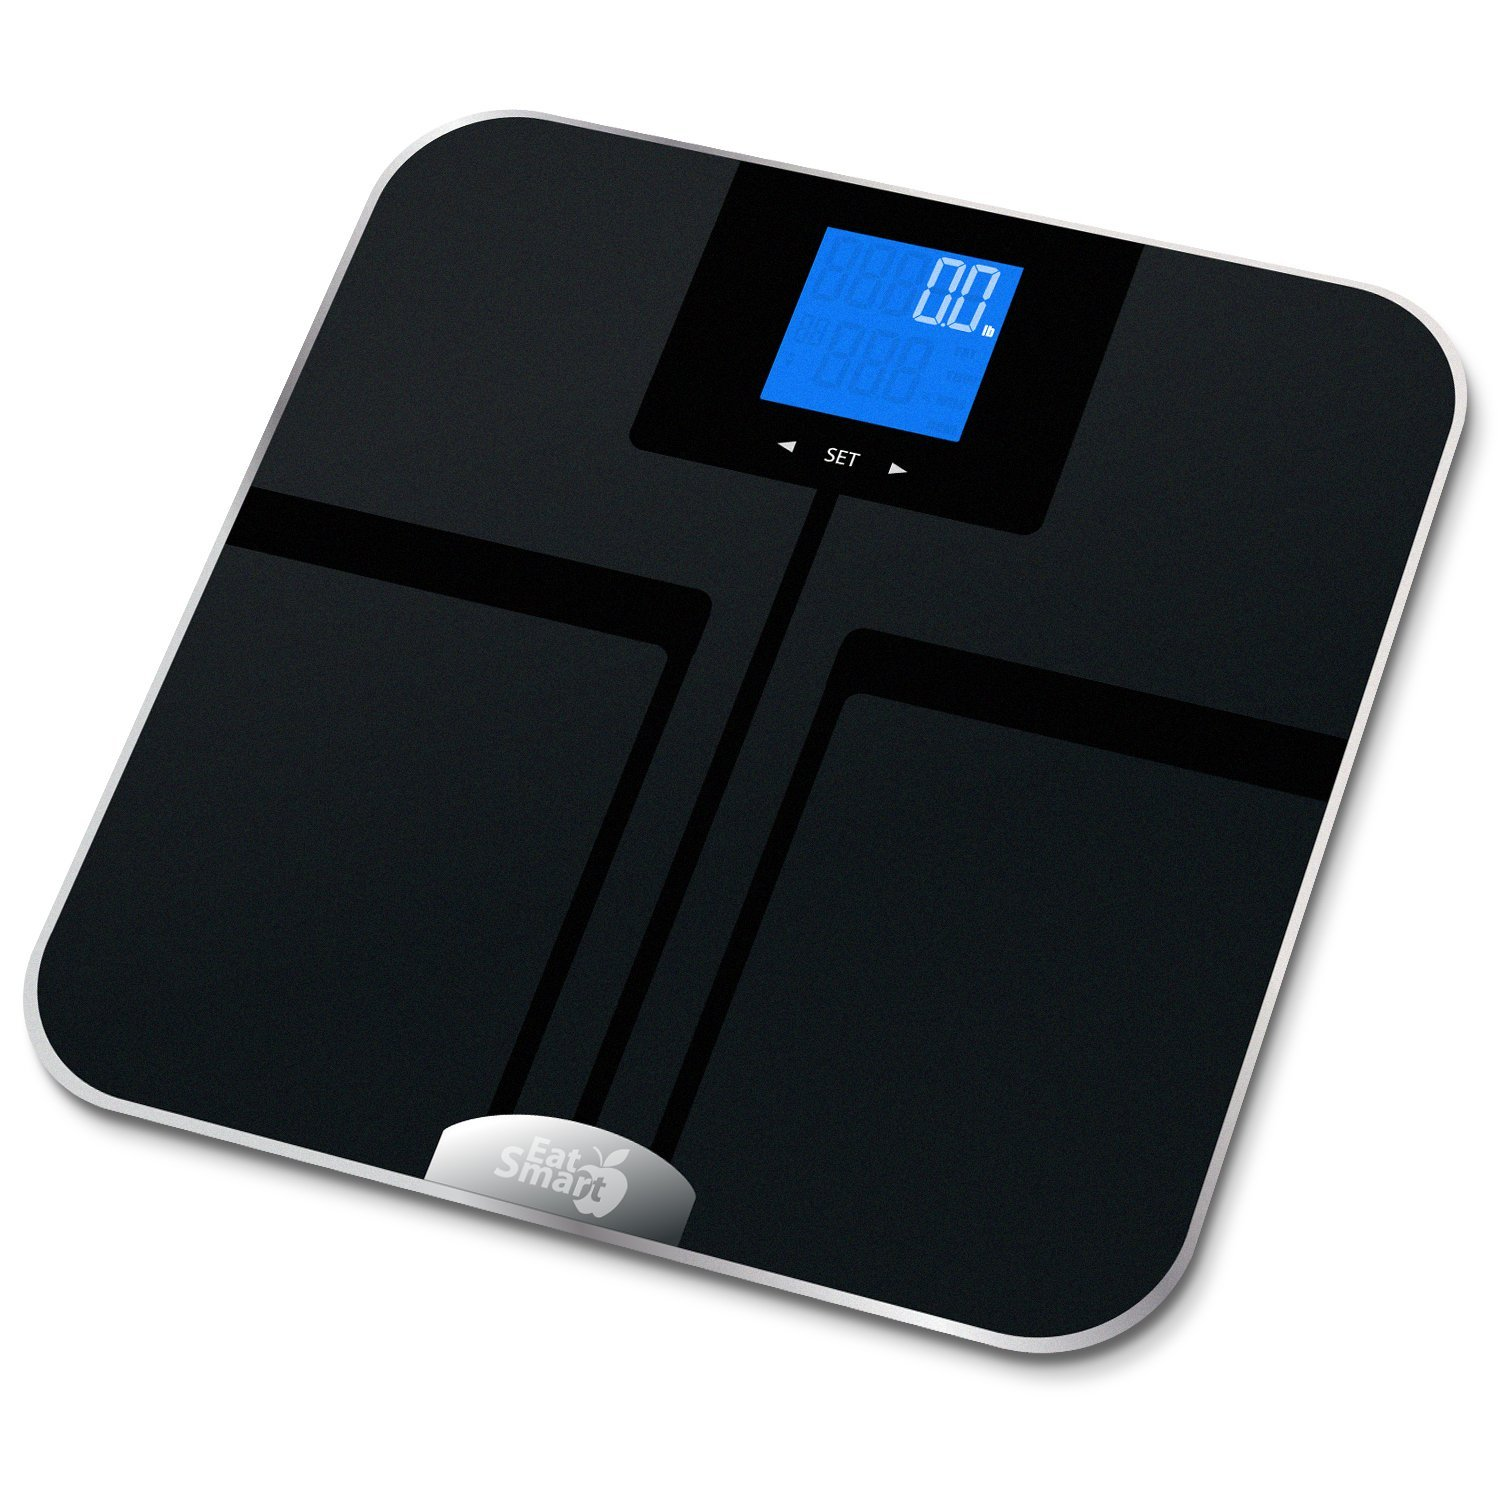 Headline for Best Body Fat Measuring Bathroom Scale - Ratings and Reviews 2020